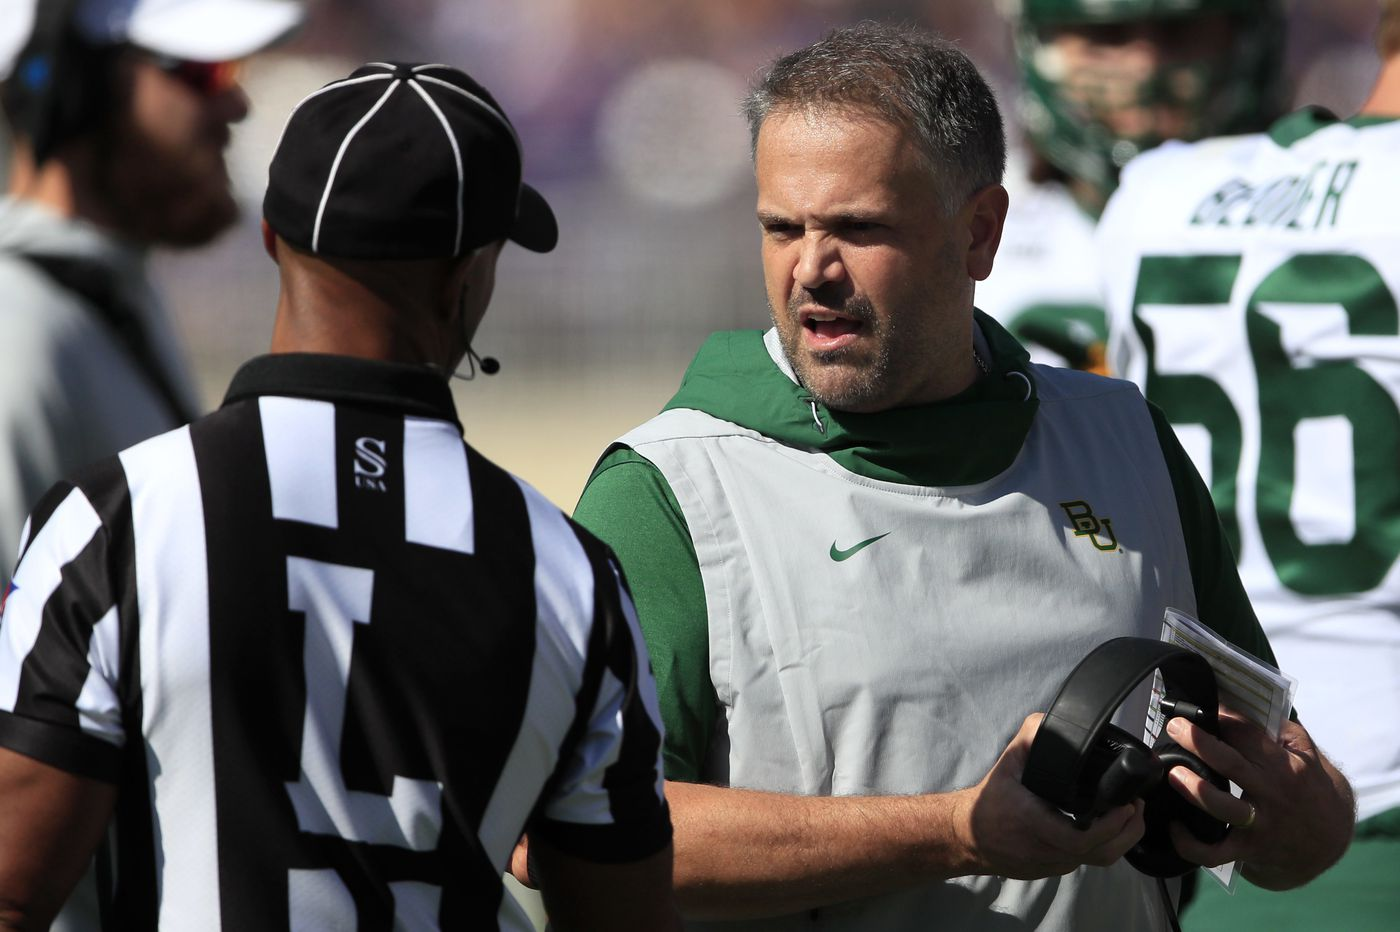 Former Temple Coach Matt Rhule Is Undefeated At Baylor